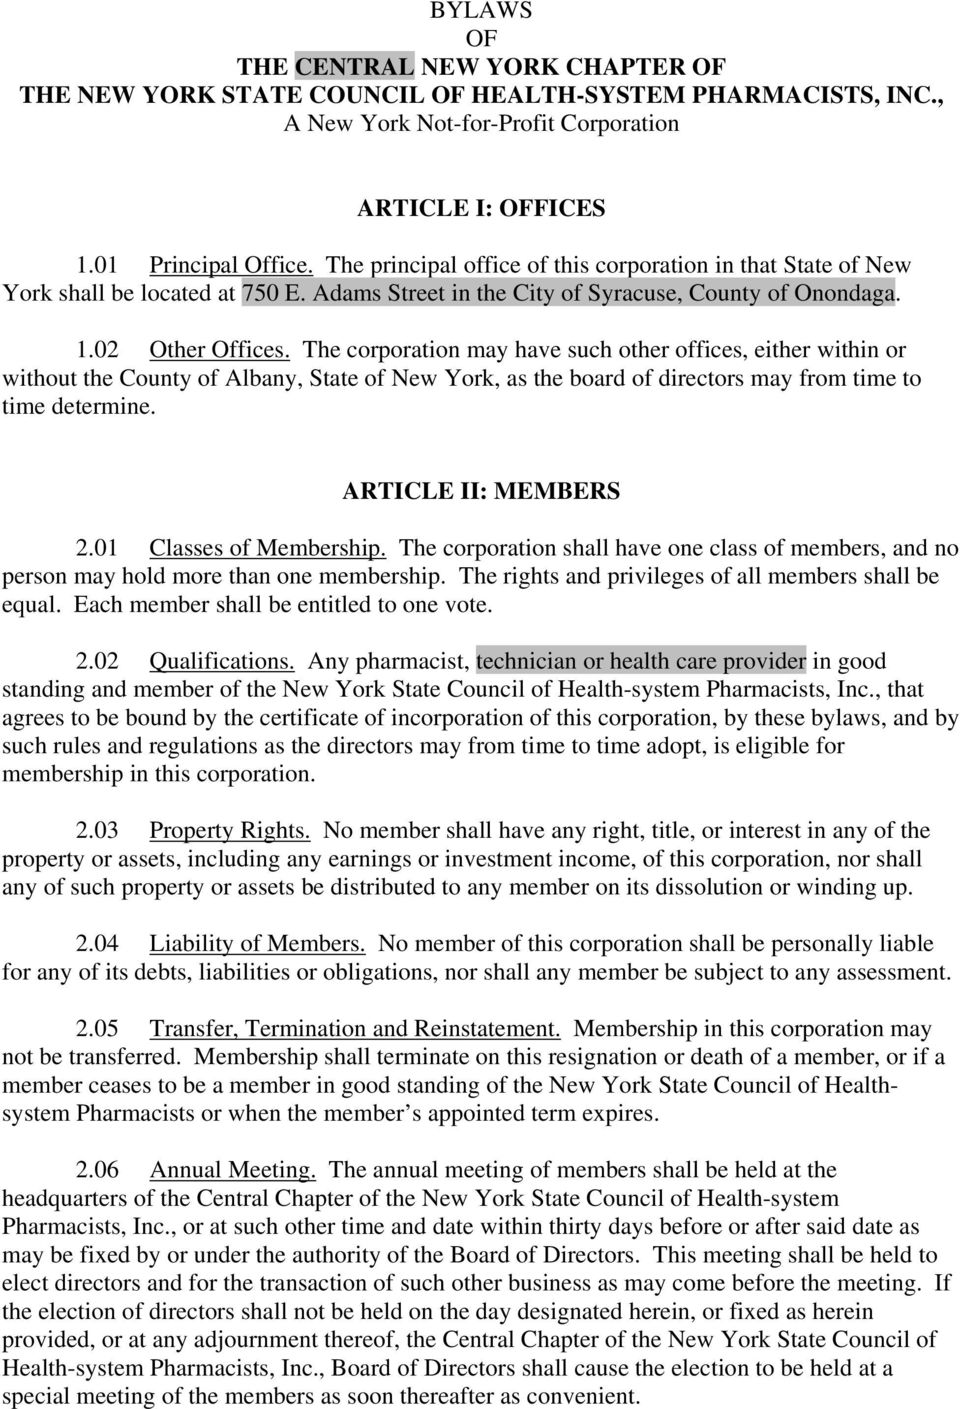 Bylaws Of The Central New York Chapter Of The New York State Council